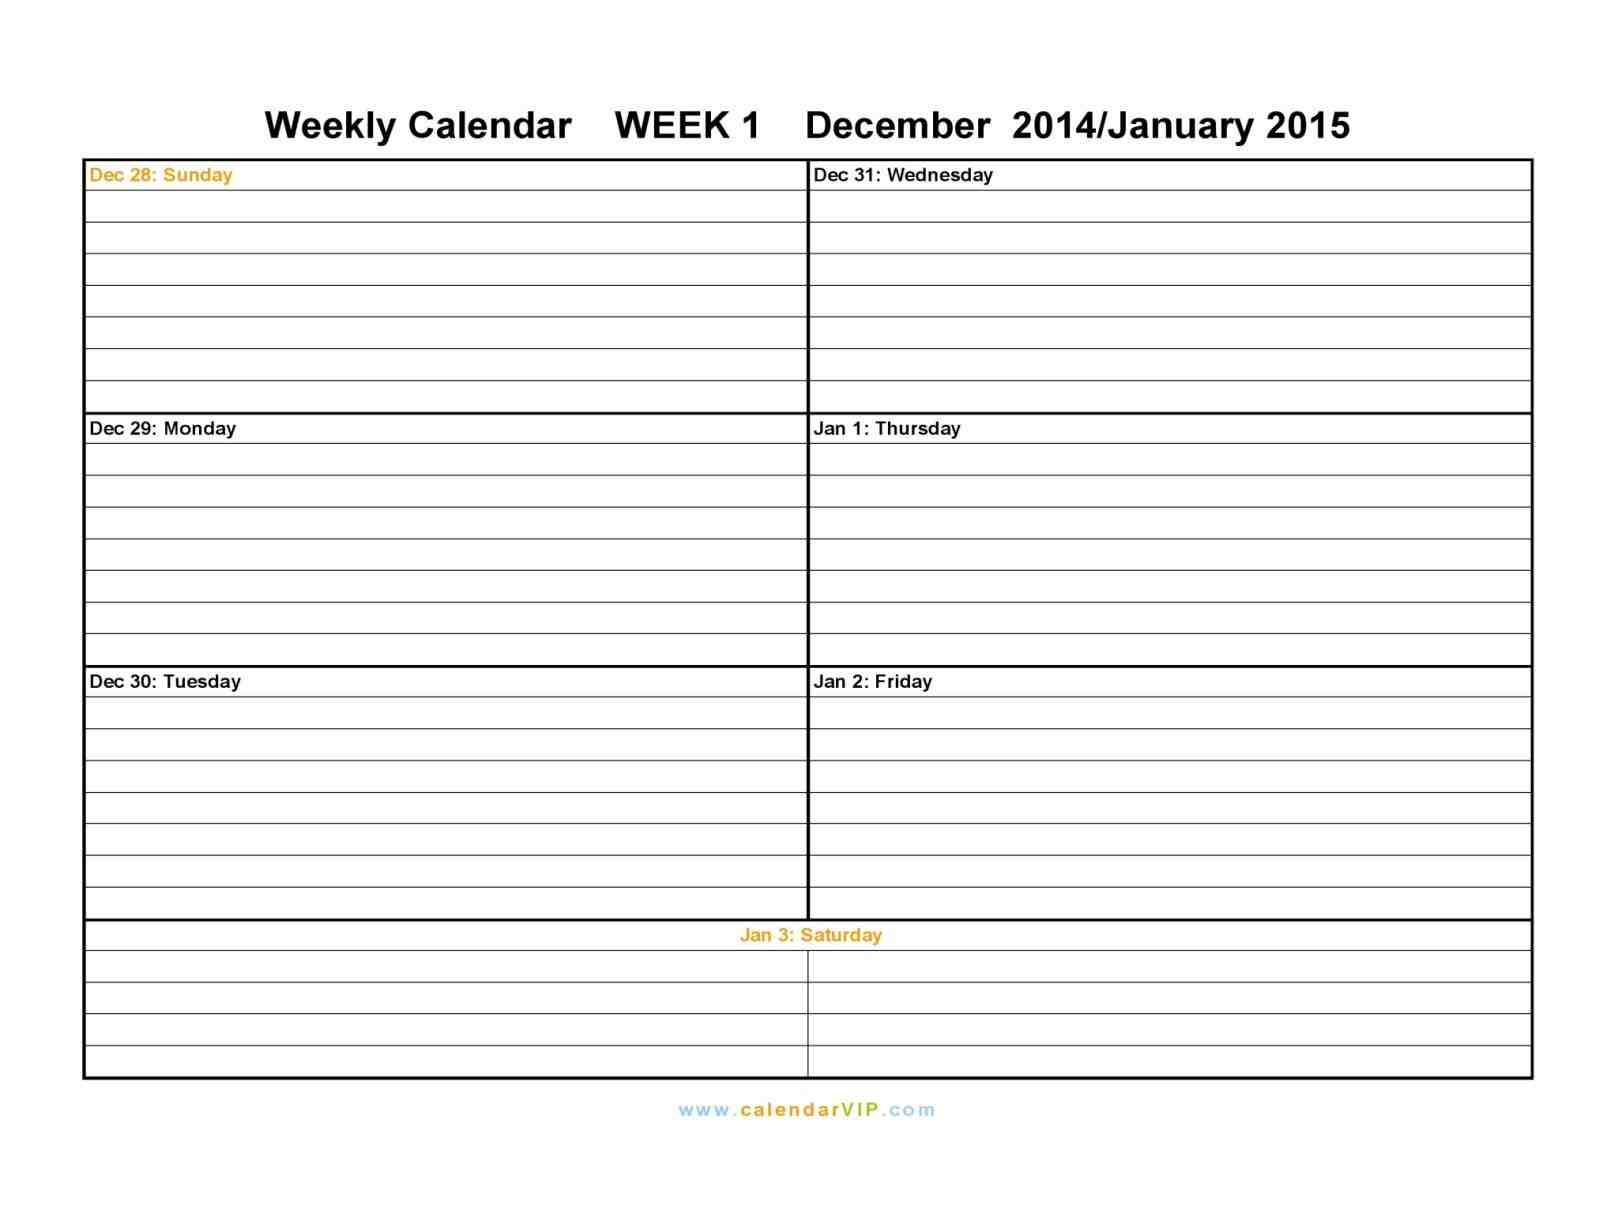 Daily Planner Online.Daily Planner Template 650×488.png Sales